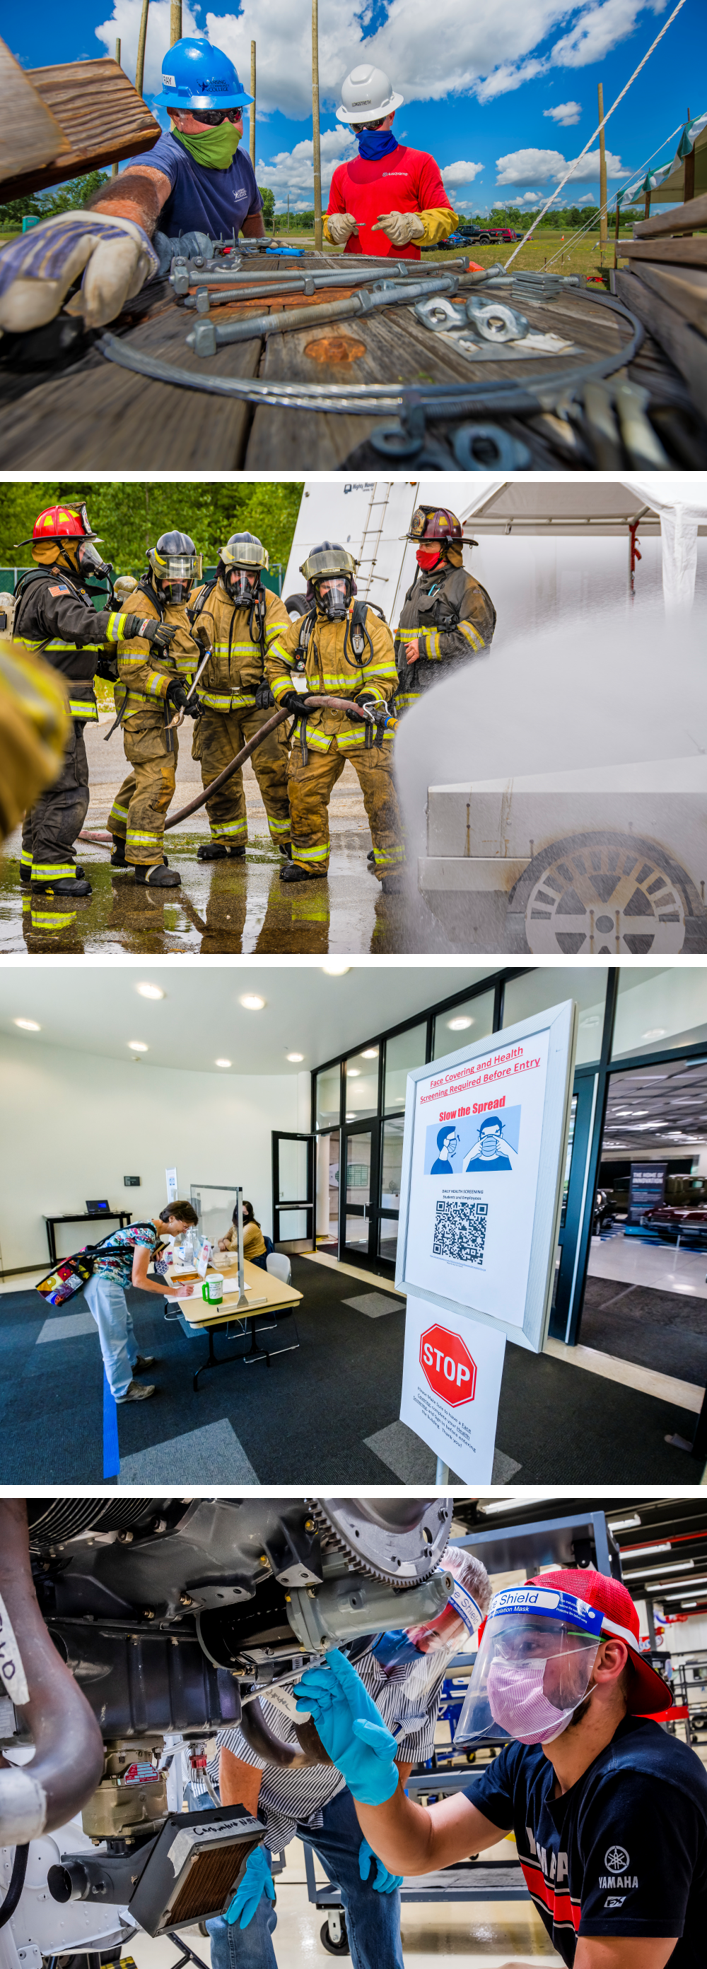 Top to bottom: Students in a lineworker class on July 13. Students put out a vehicle fire at the Fire Academy on July 21. Health screenings conducted at the entrance to West Campus on July 28. Students in an Aviation Maintenance class on June 30.